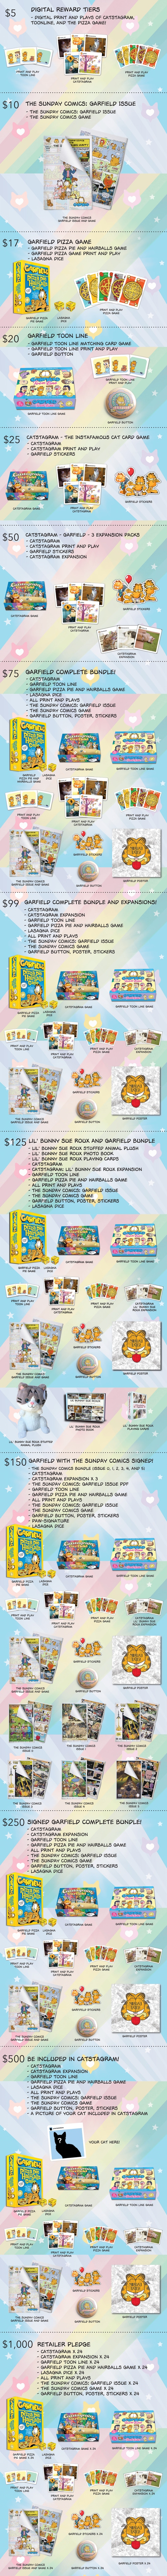 Remember, if you want to keep things simple, we have three games and a comic to offer! So you're always going to get either Catstagram, Garfield Pizza Pie and Hairballs, Garfield Toon Line, or the special Garfield-themed issue of The Sunday Comics.